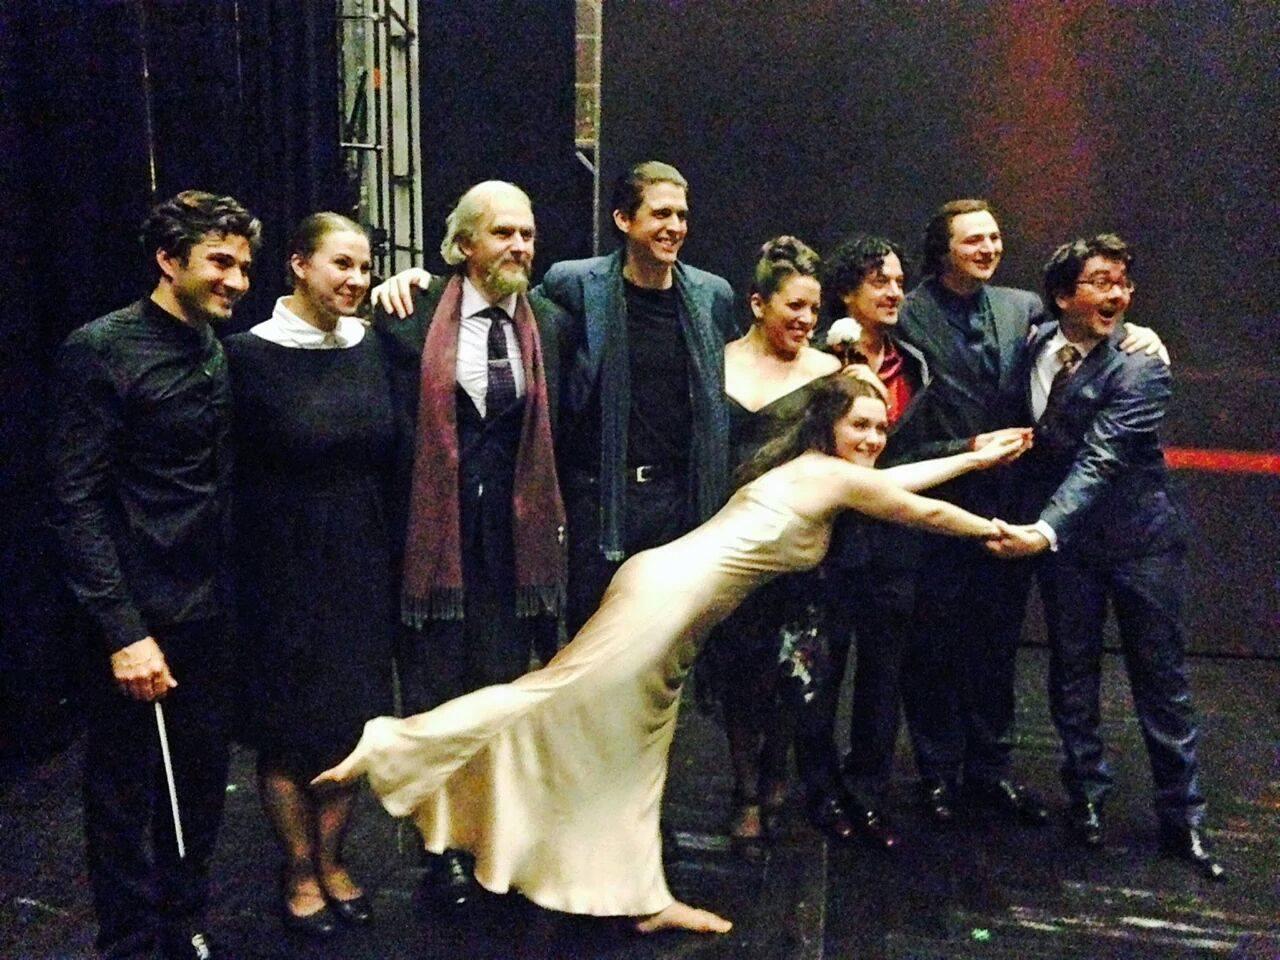 La Traviata Tour Cast